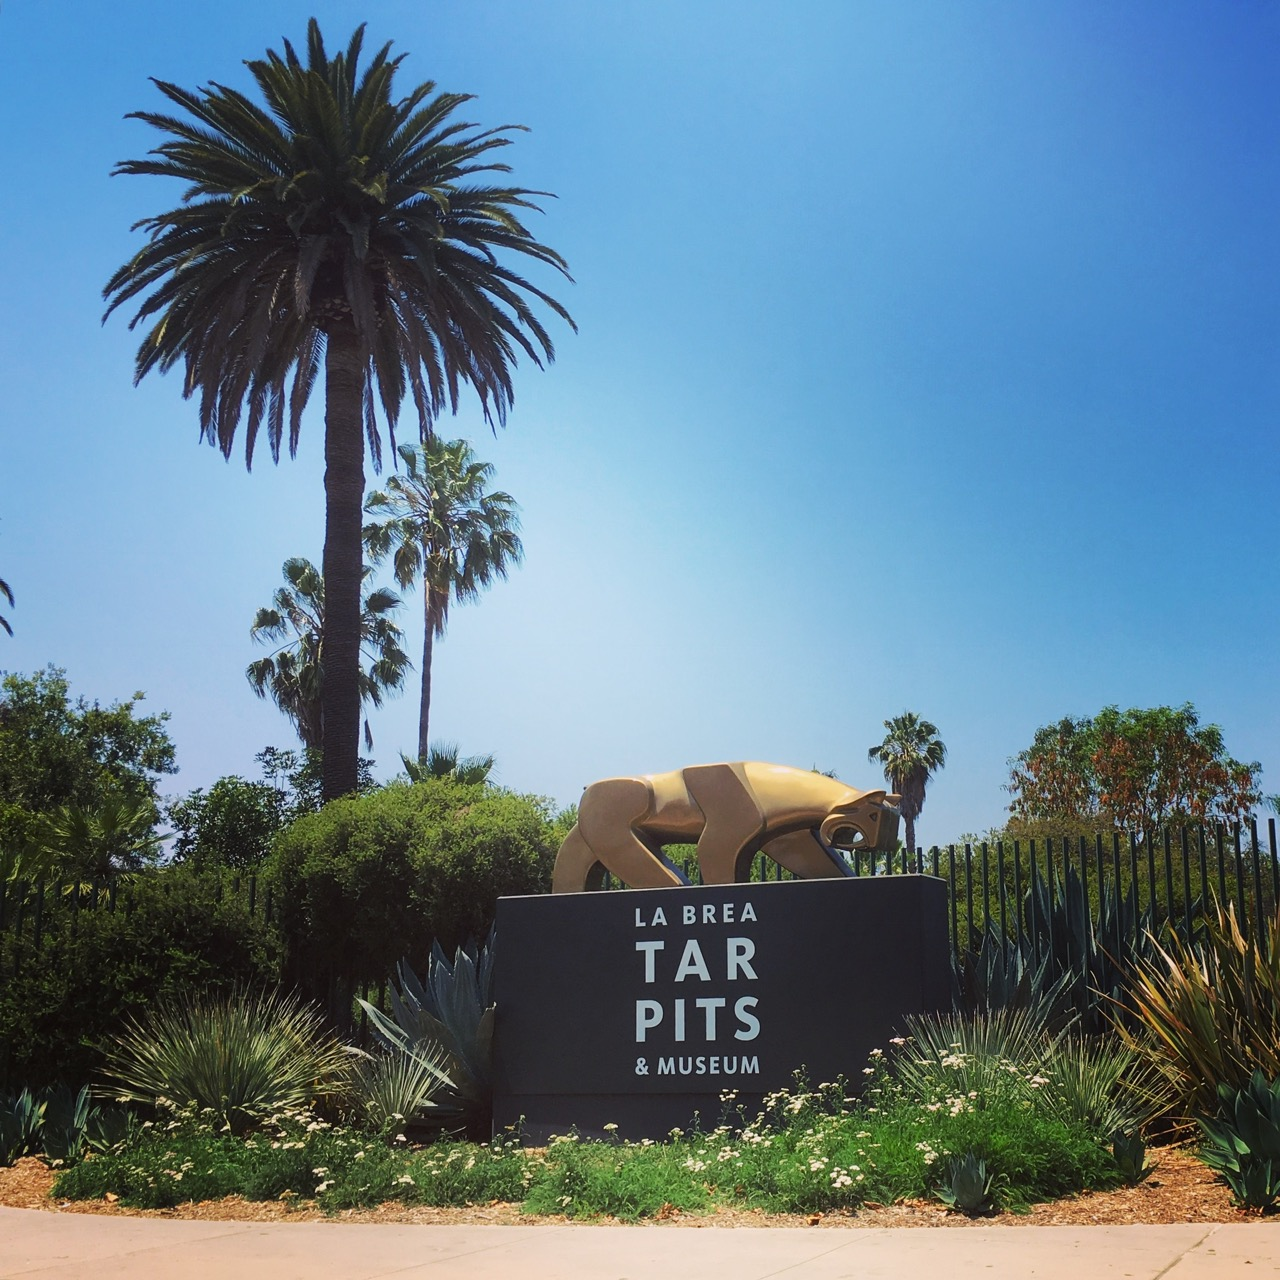 The La Brea Tar Pits is one of the fun and educational museums to take kids in Los Angeles